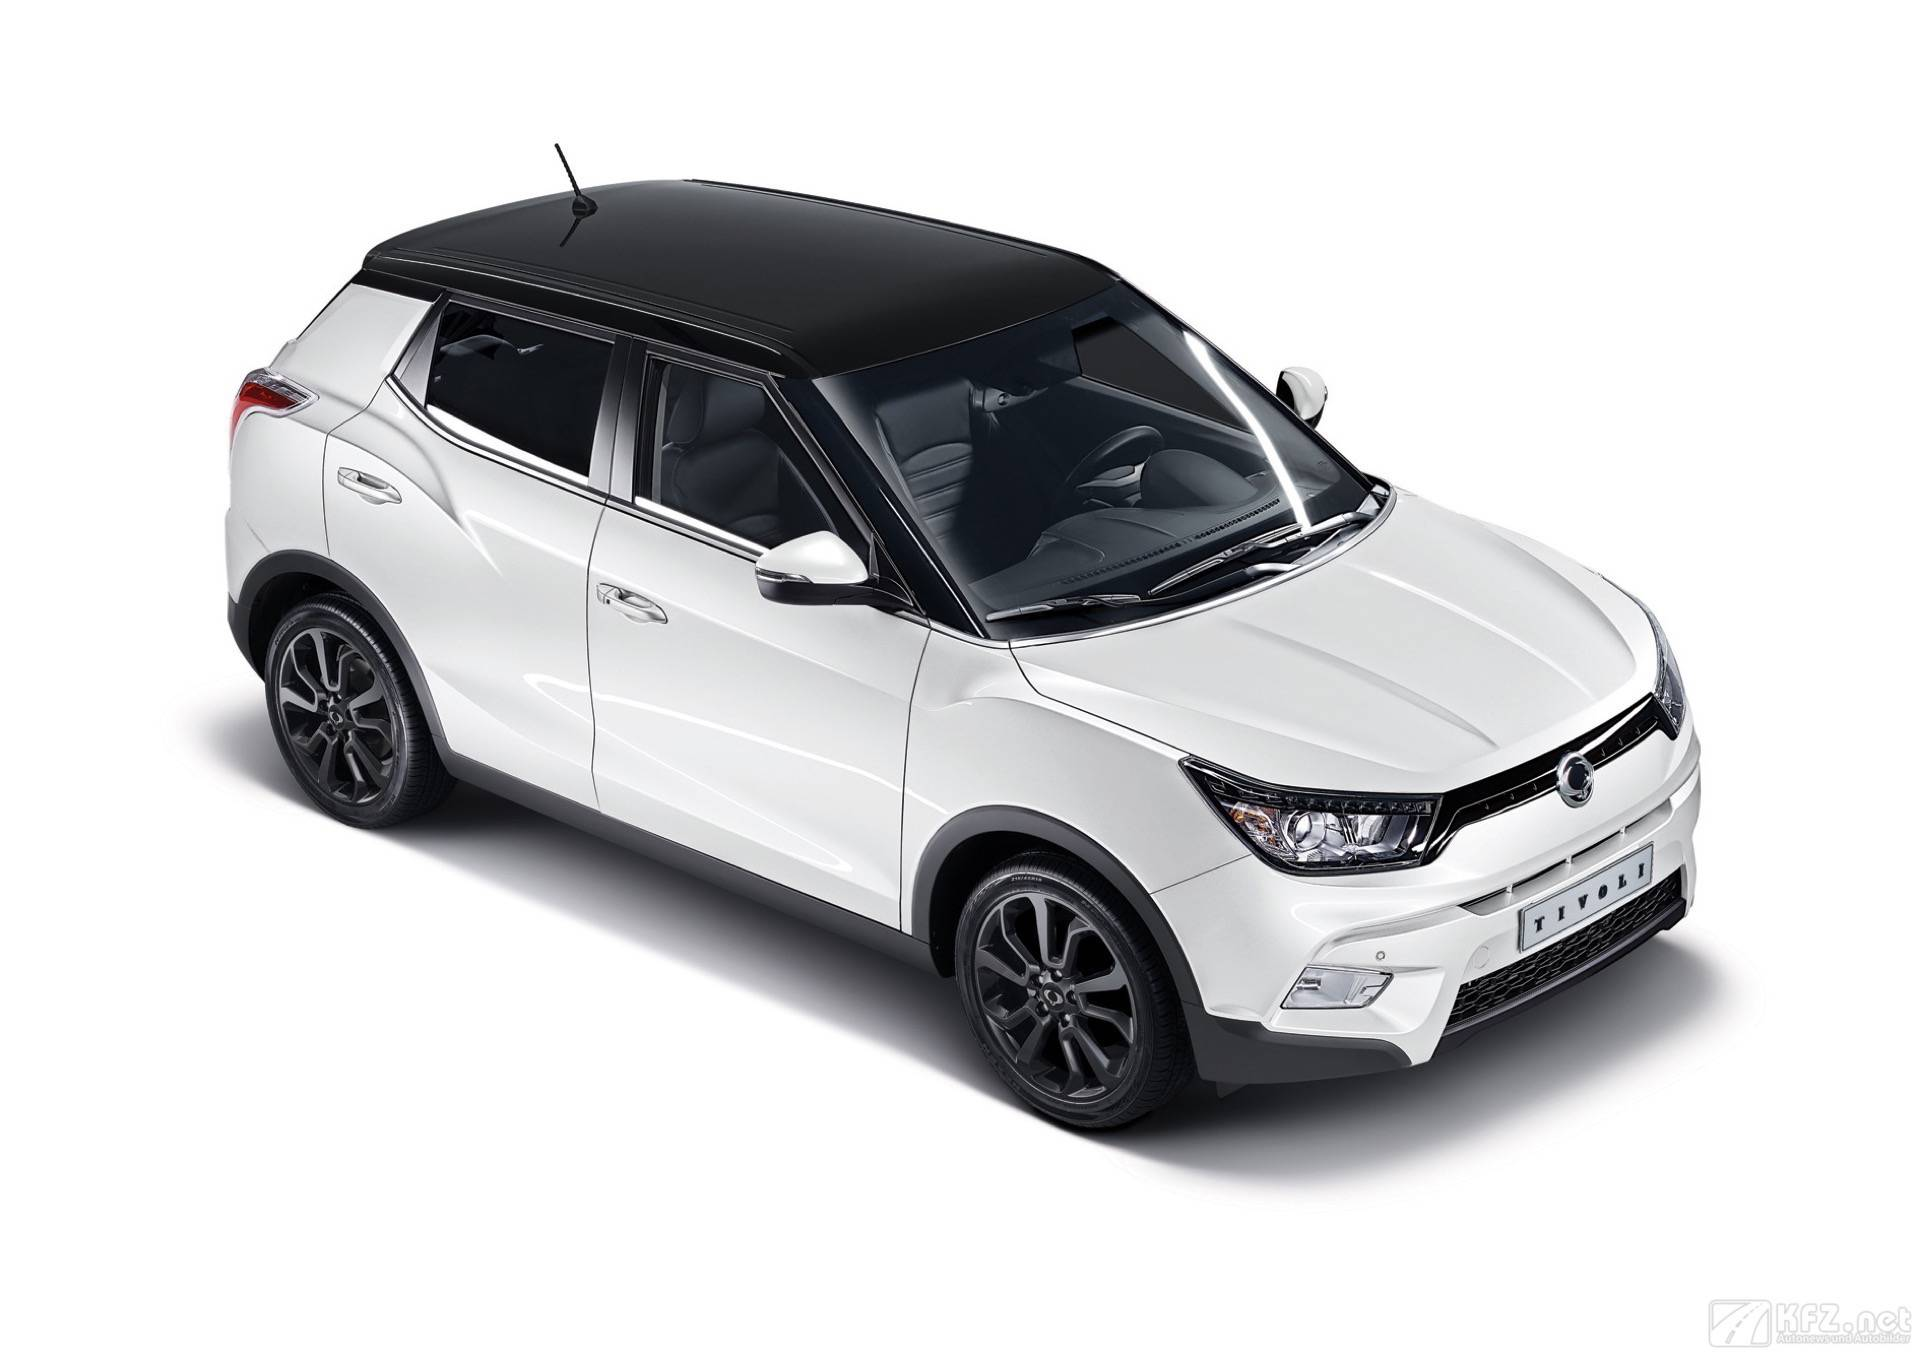 ssangyong tivoli bilder suv limousine ab euro. Black Bedroom Furniture Sets. Home Design Ideas